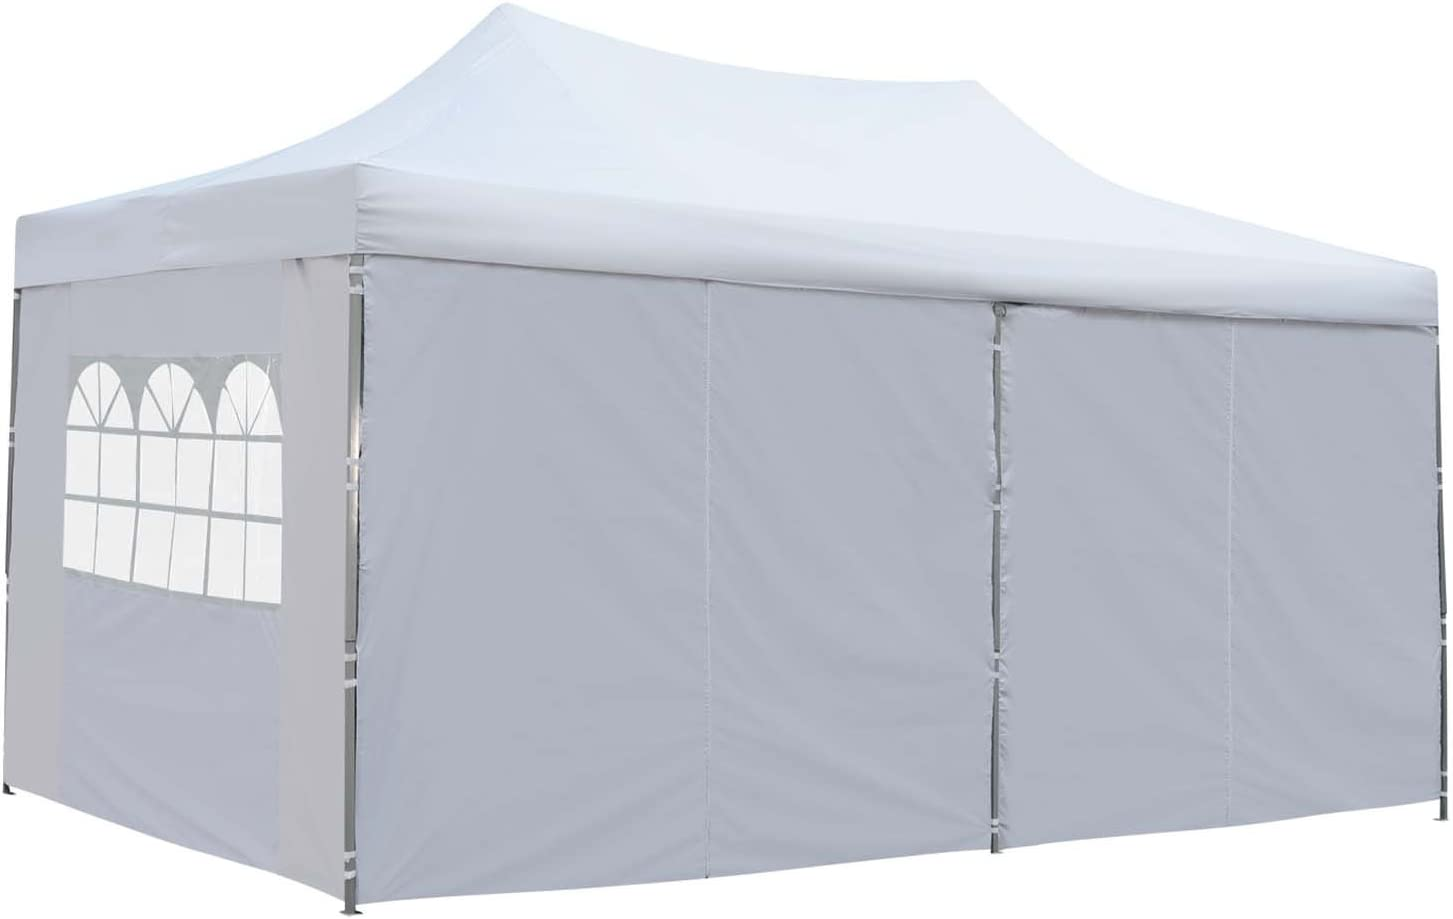 Outdoor Basic 10x20 Ft Pop up Canopy Party Wedding Gazebo Tent Shelter with Removable Side Walls Red